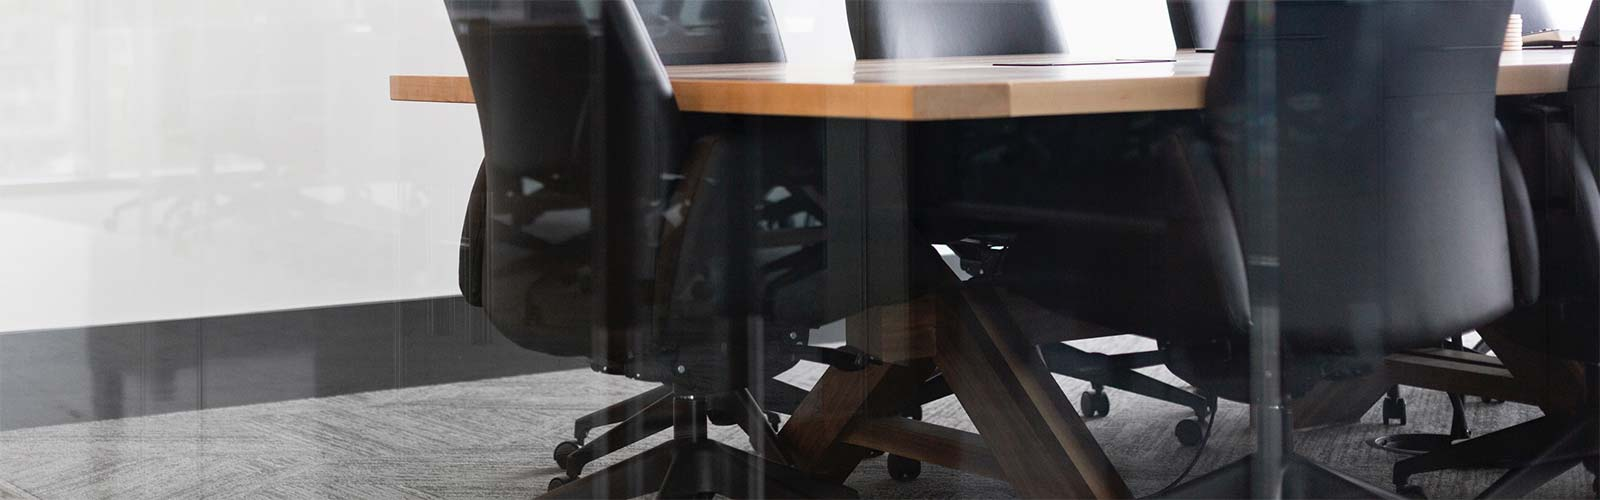 Boardroom desk with black leather chairs surrounding it